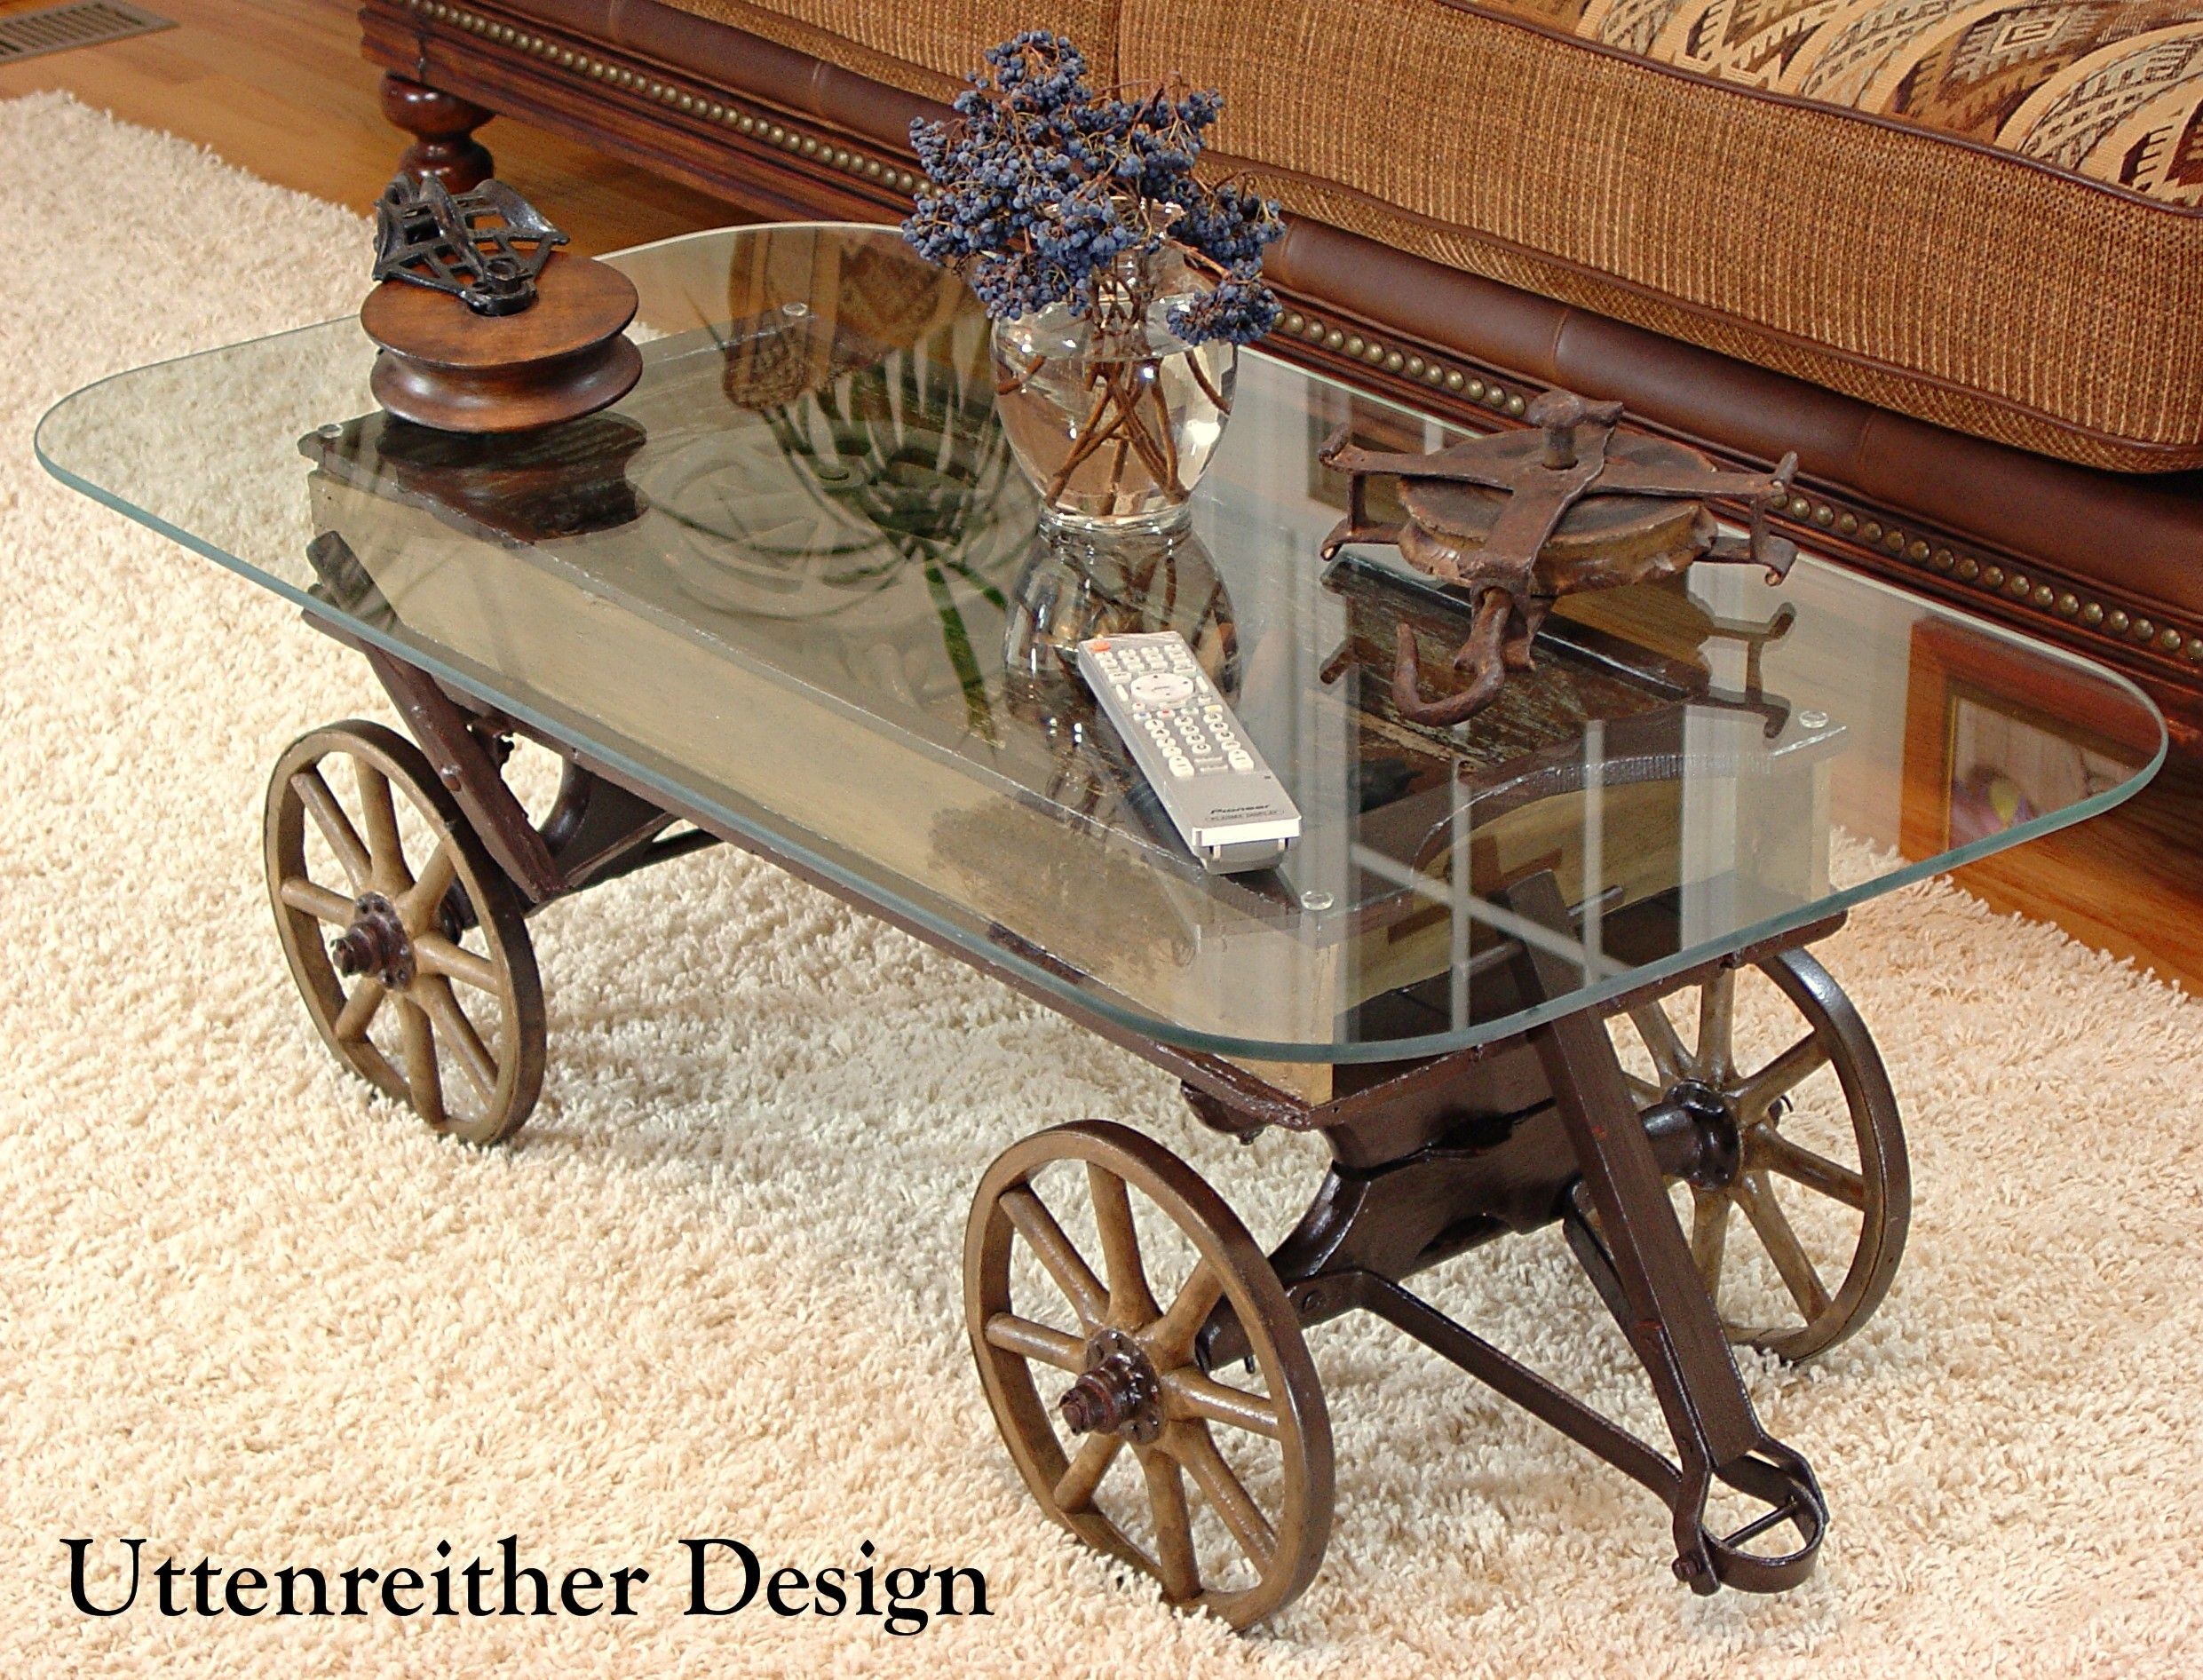 Vintage toy wagons all grown up Repurpose for a nostalgic display